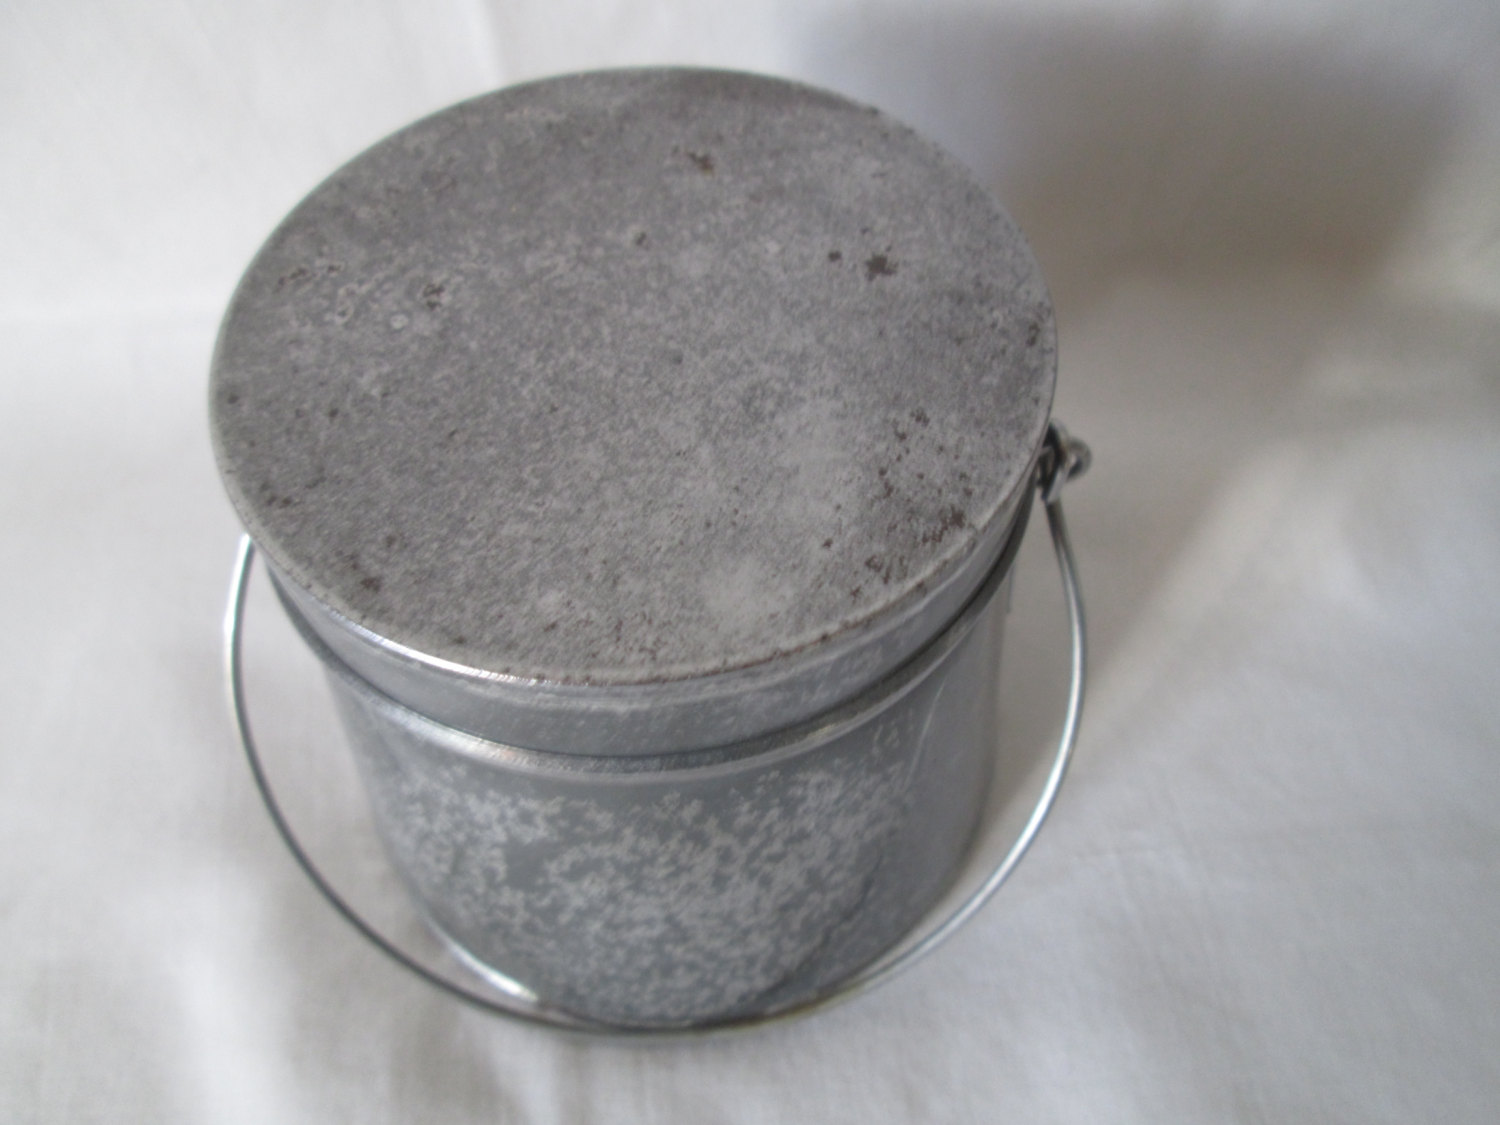 Antique Paint Brush Clean Pot Cleaning Supplies Holbein (German) Galvanized  Weighted bottom removable inside tray